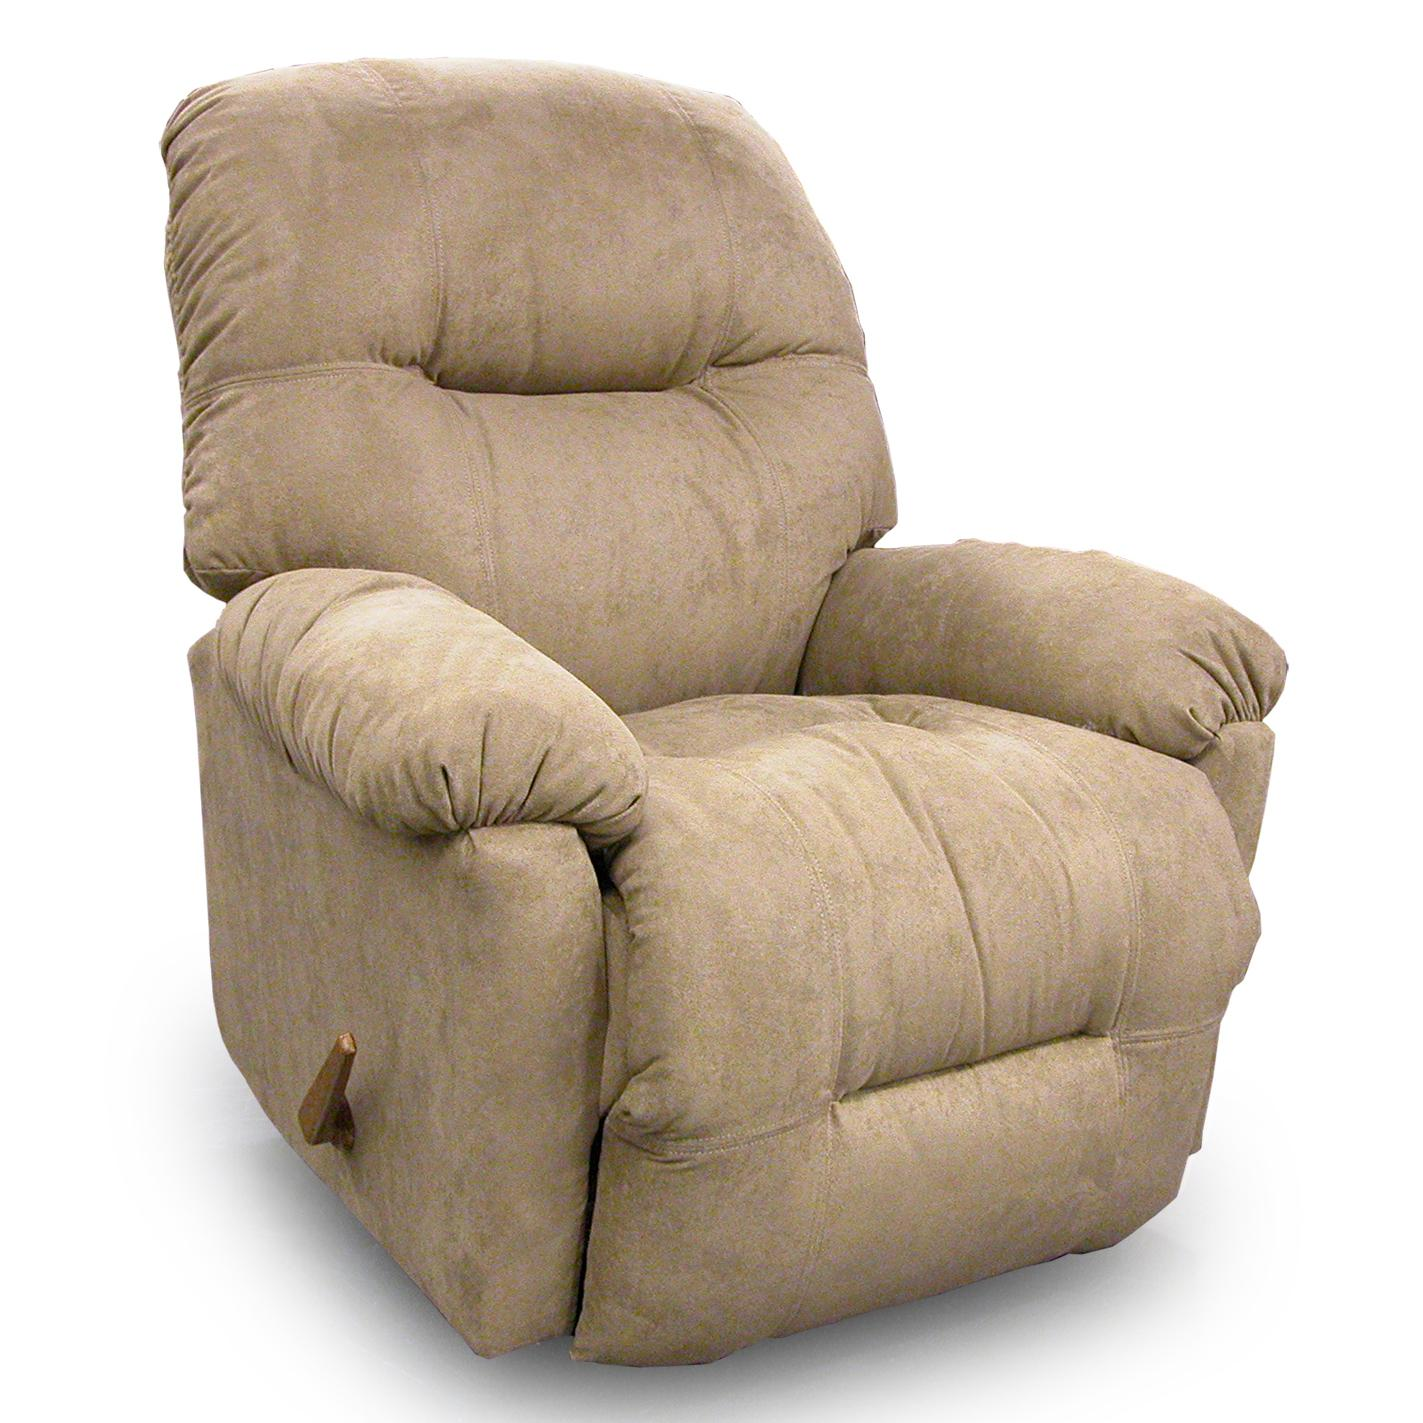 Recliners That Do Not Look Like Recliners Reading And Writing Positions Zen Scribbles